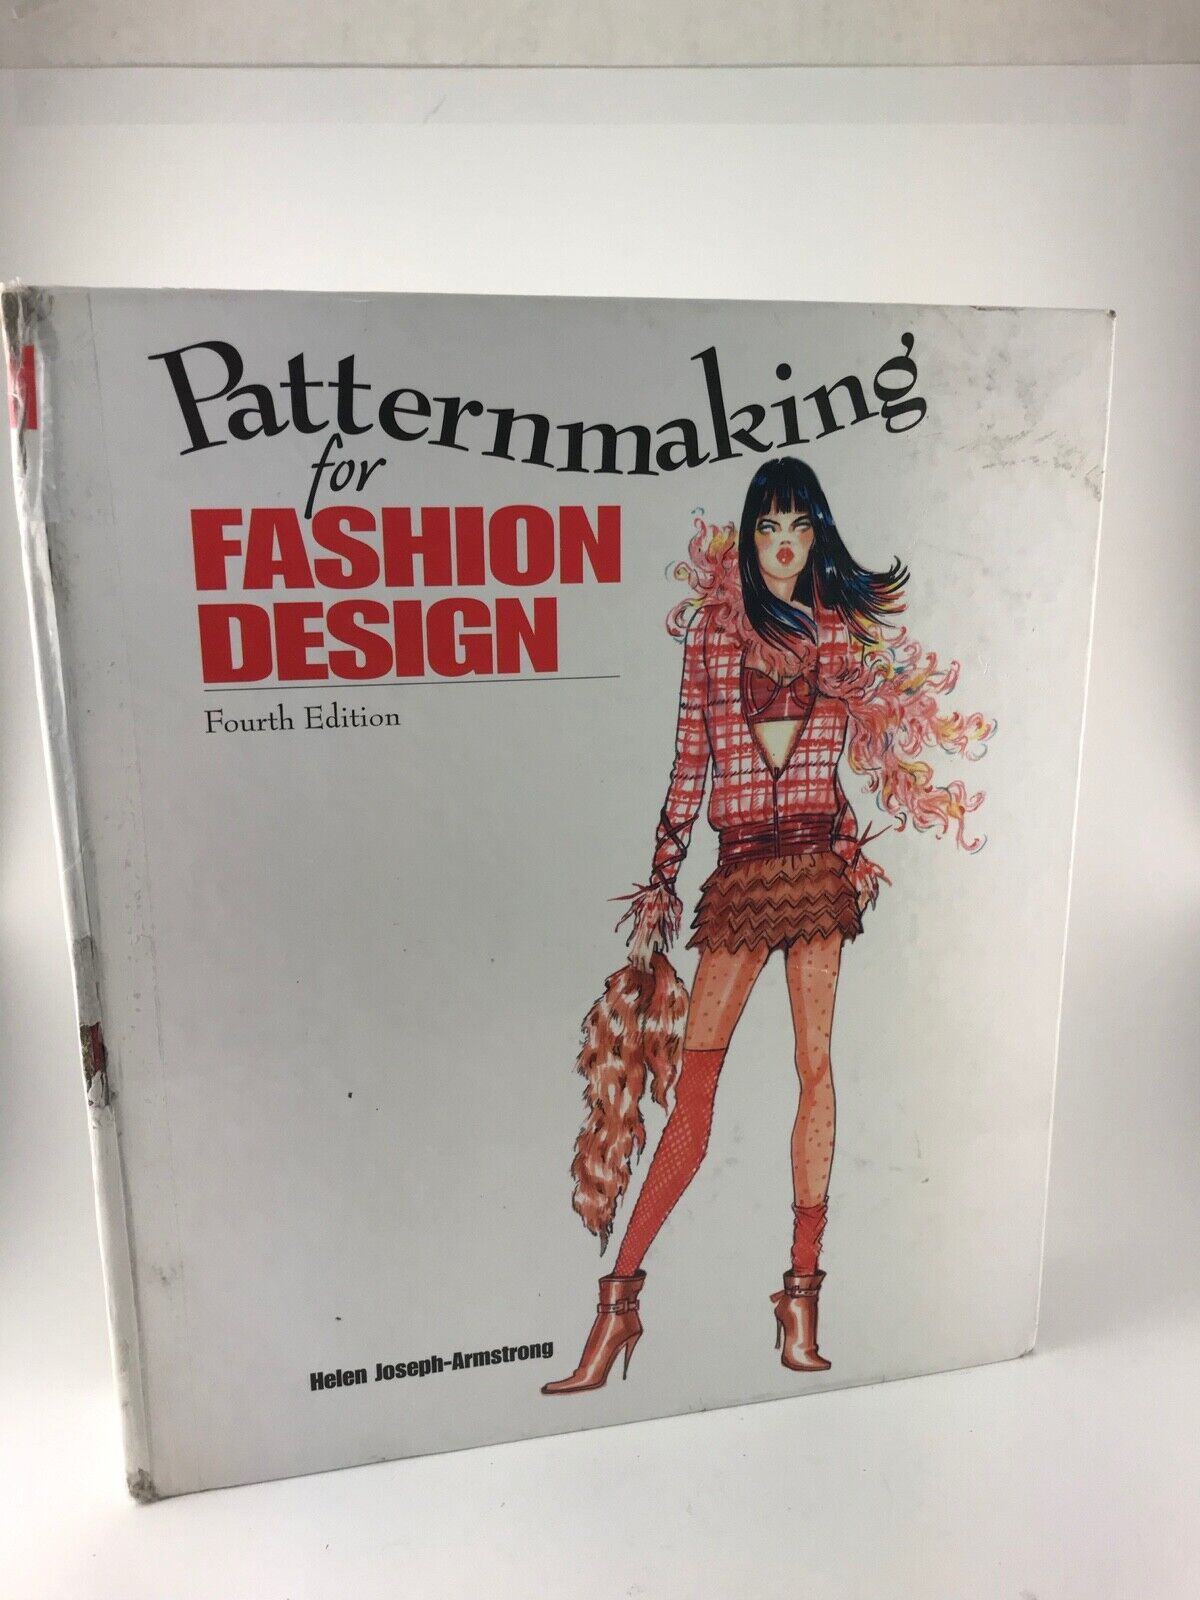 Patternmaking For Fashion Design By Helen Joseph Armstrong Hardcover Revised Edition For Sale Online Ebay